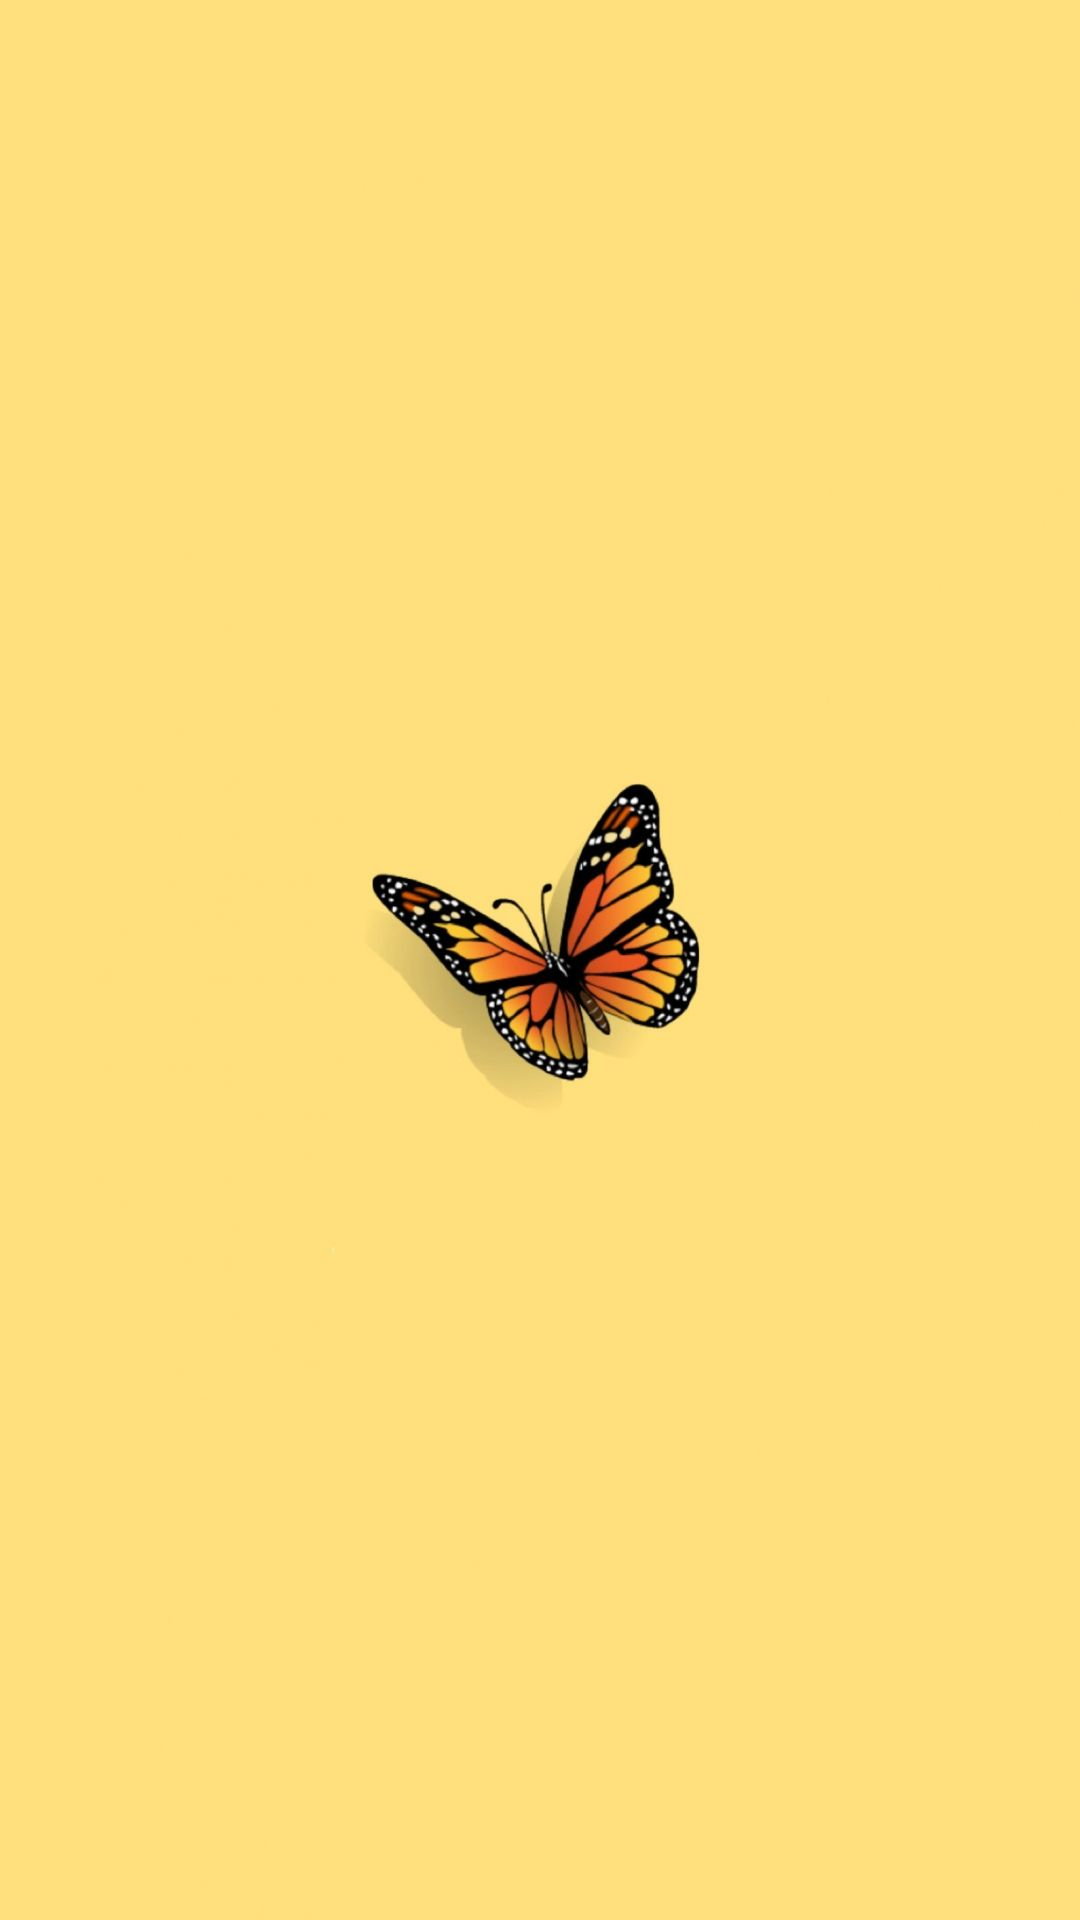 40 Aesthetic Butterfly Android Iphone Desktop Hd Backgrounds Wallpapers 1080p 4k 1591x2829 2020